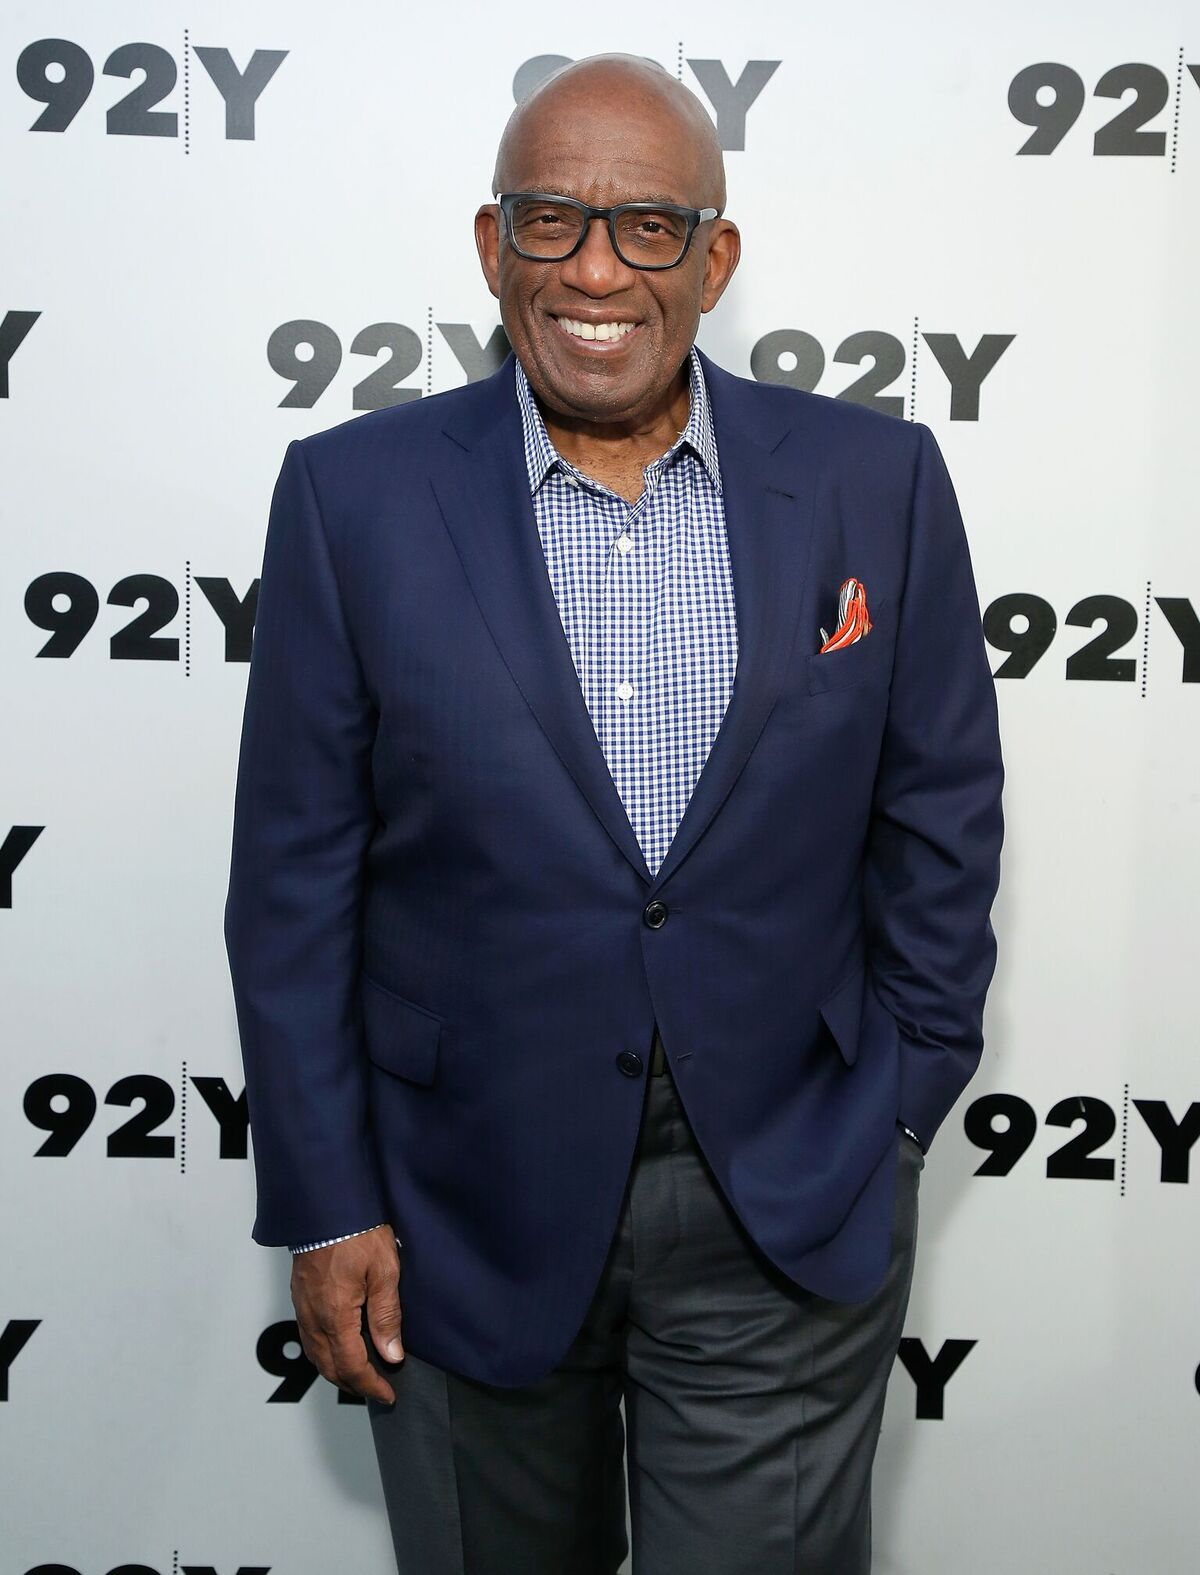 Al Roker attends the Natalie Morales in conversation with Al Roker event at 92nd Street on April 16, 2018 | Photo: Getty Images